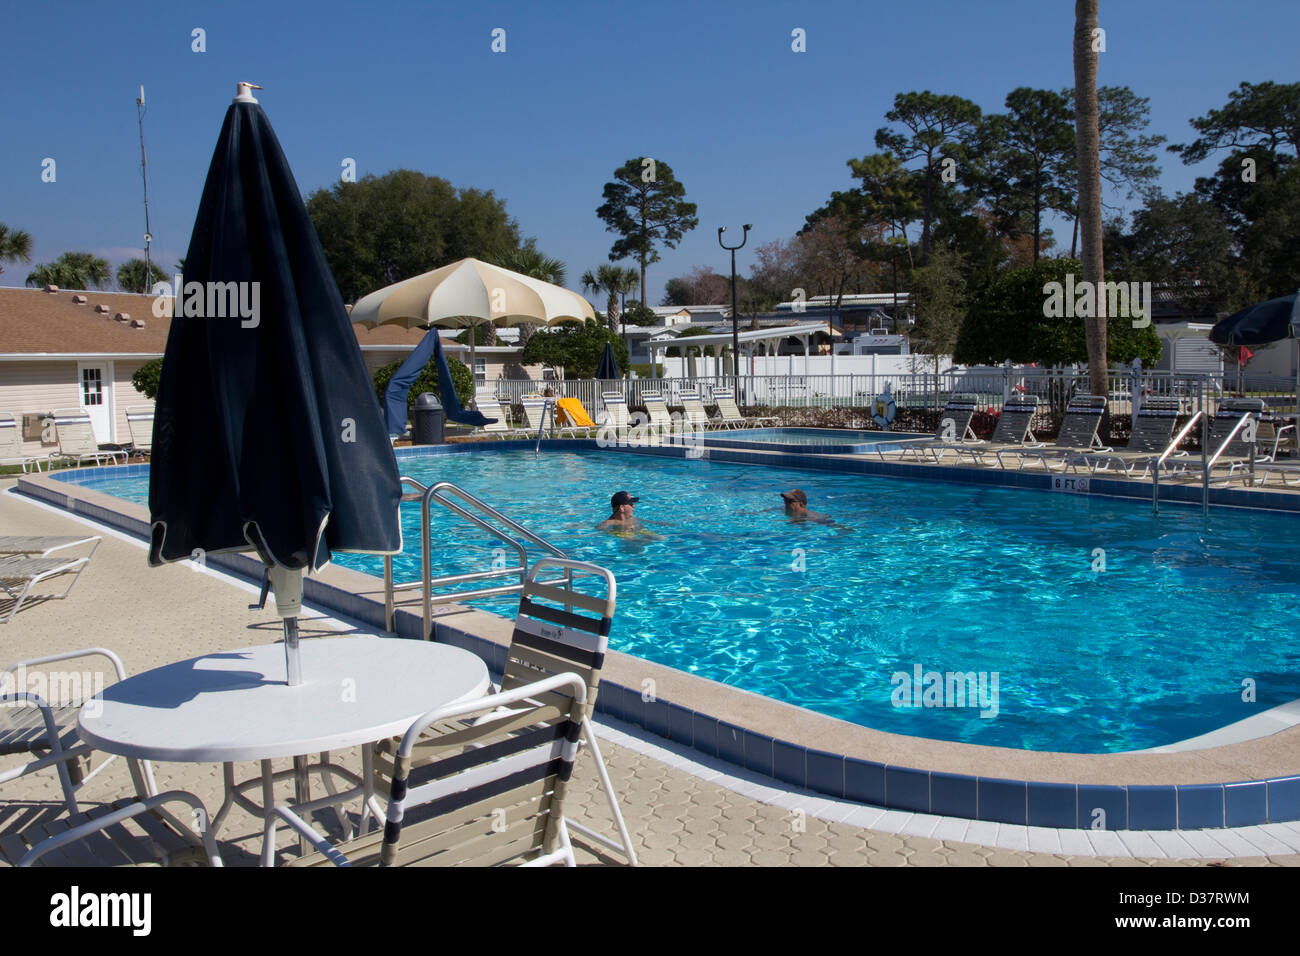 Pool area at Orange City RV Resort, just a short distance from DeLeon Springs State Park, FL. - Stock Image